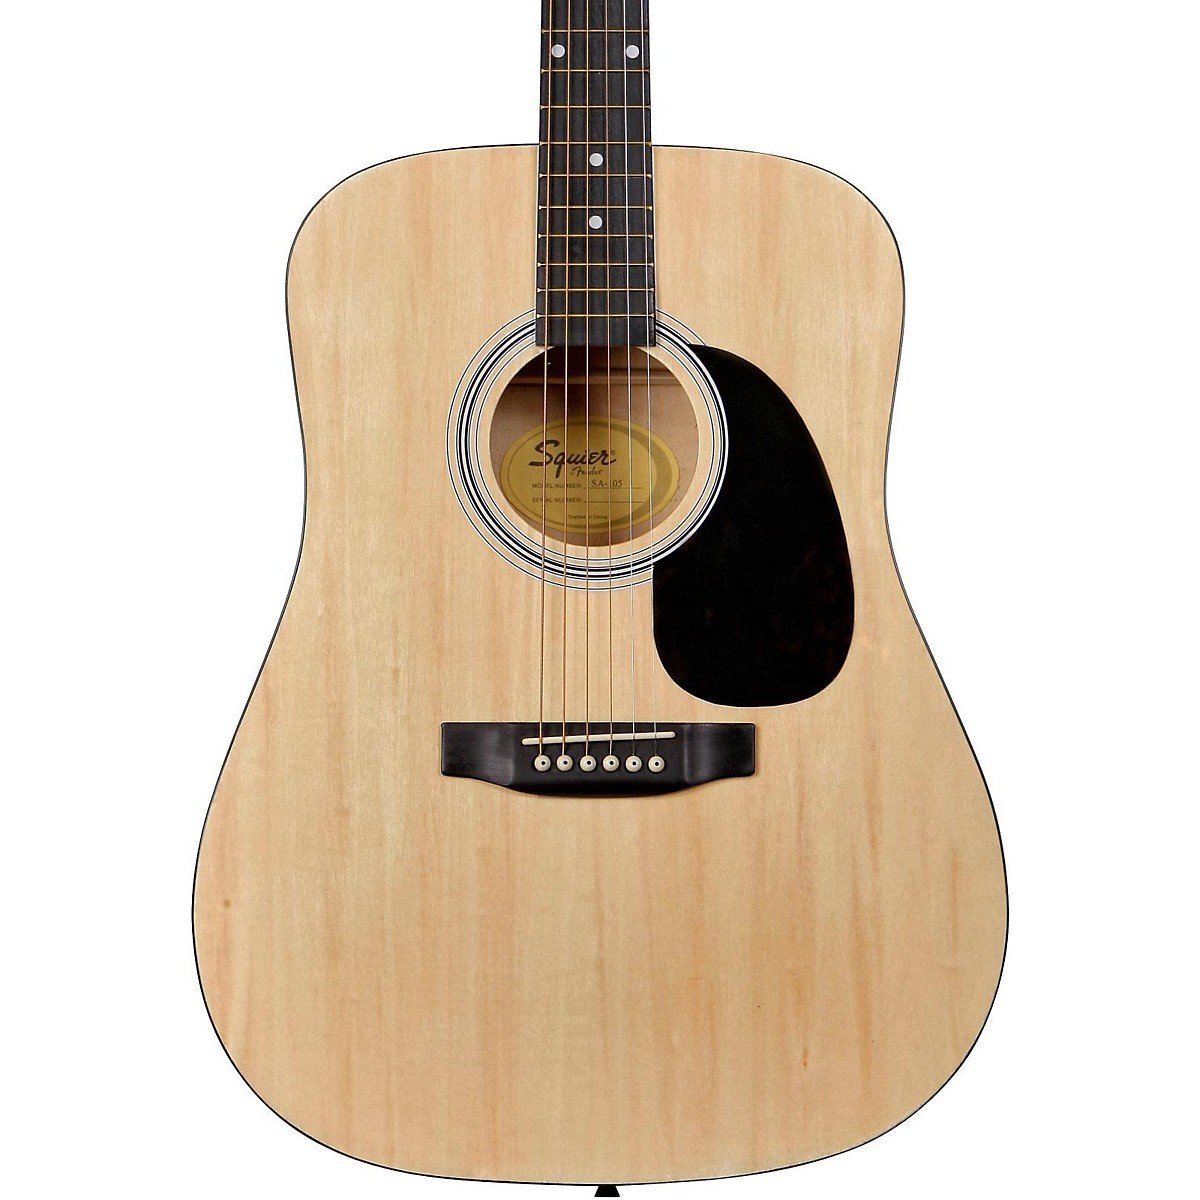 Fender Squier SA-105N Acoustic Guitar, Natural